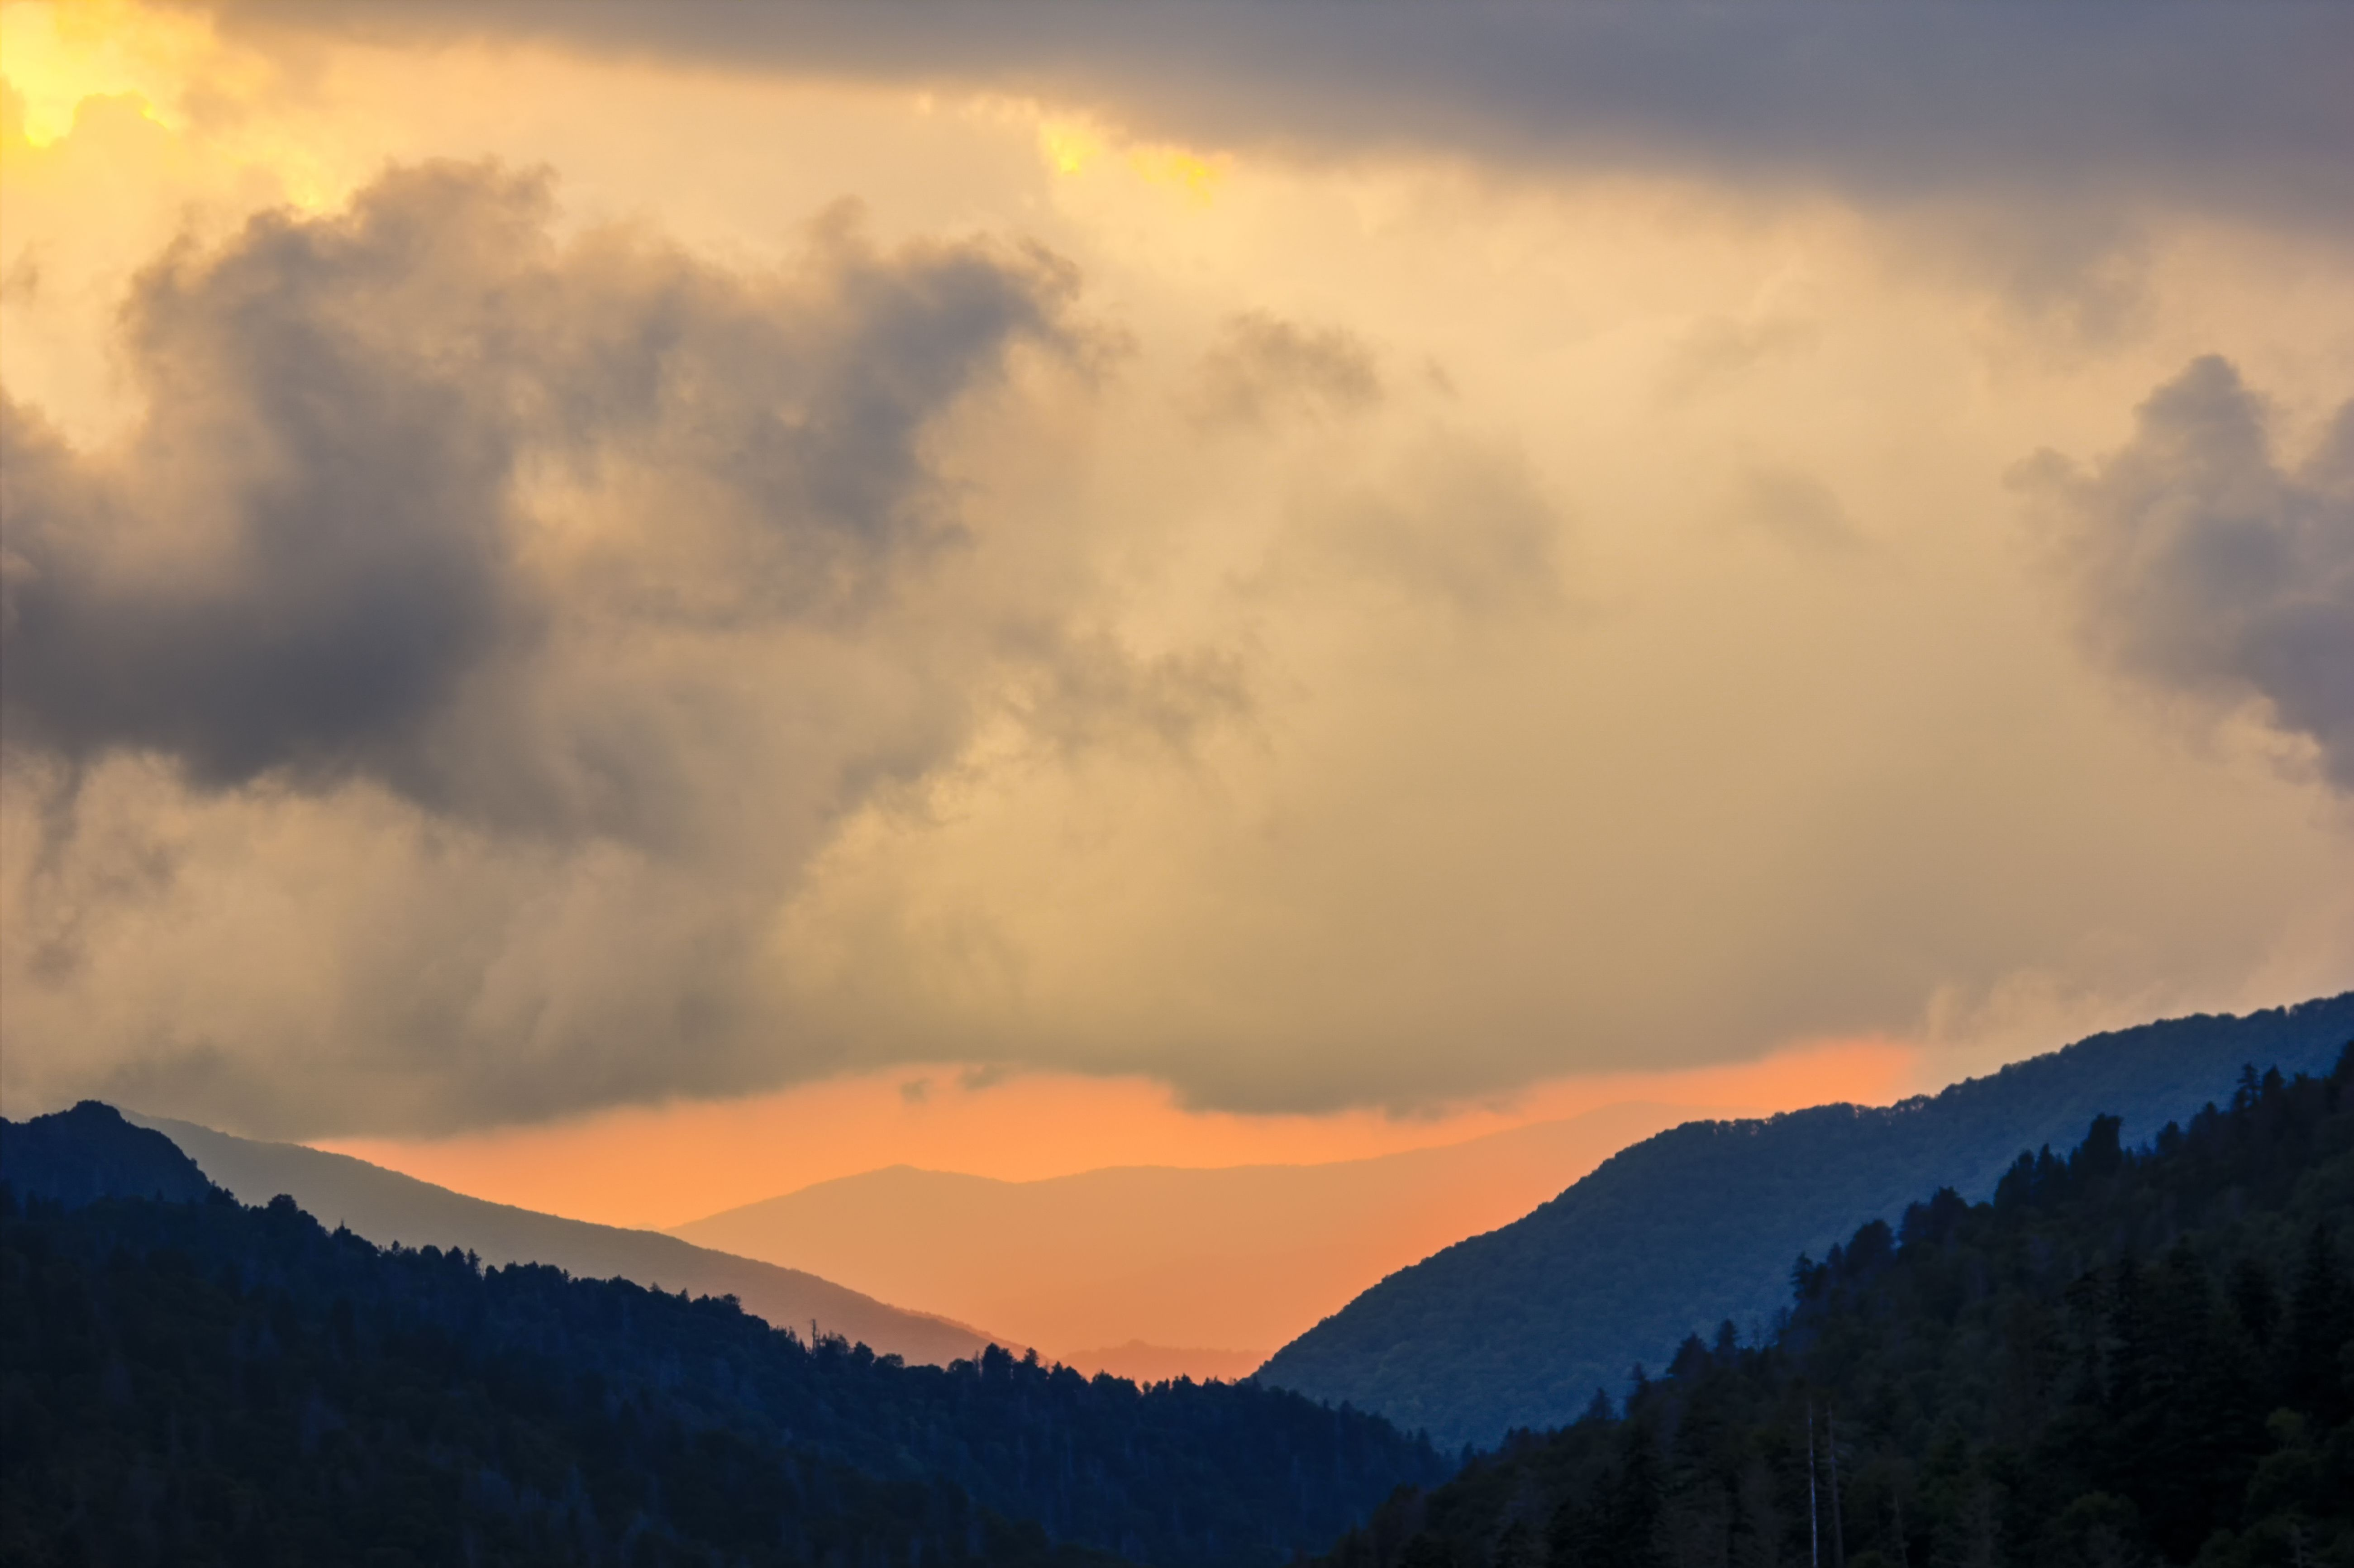 An amazing view of the Great Smoky Mountains National Park at sunset